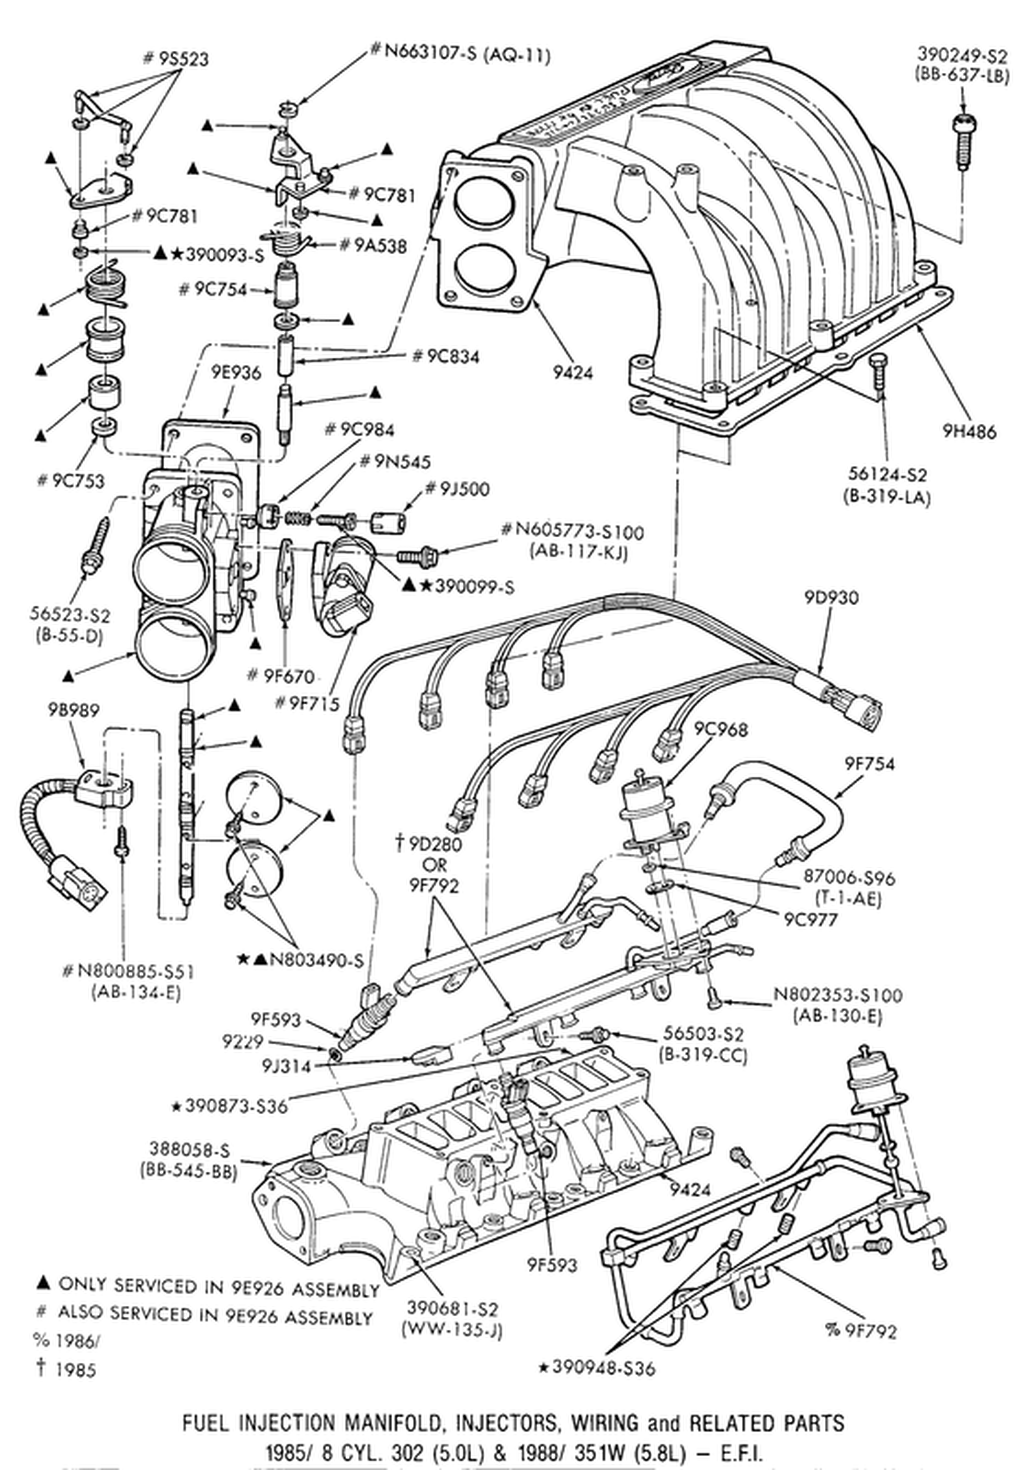 1969 Firebird Engine Wiring Diagram